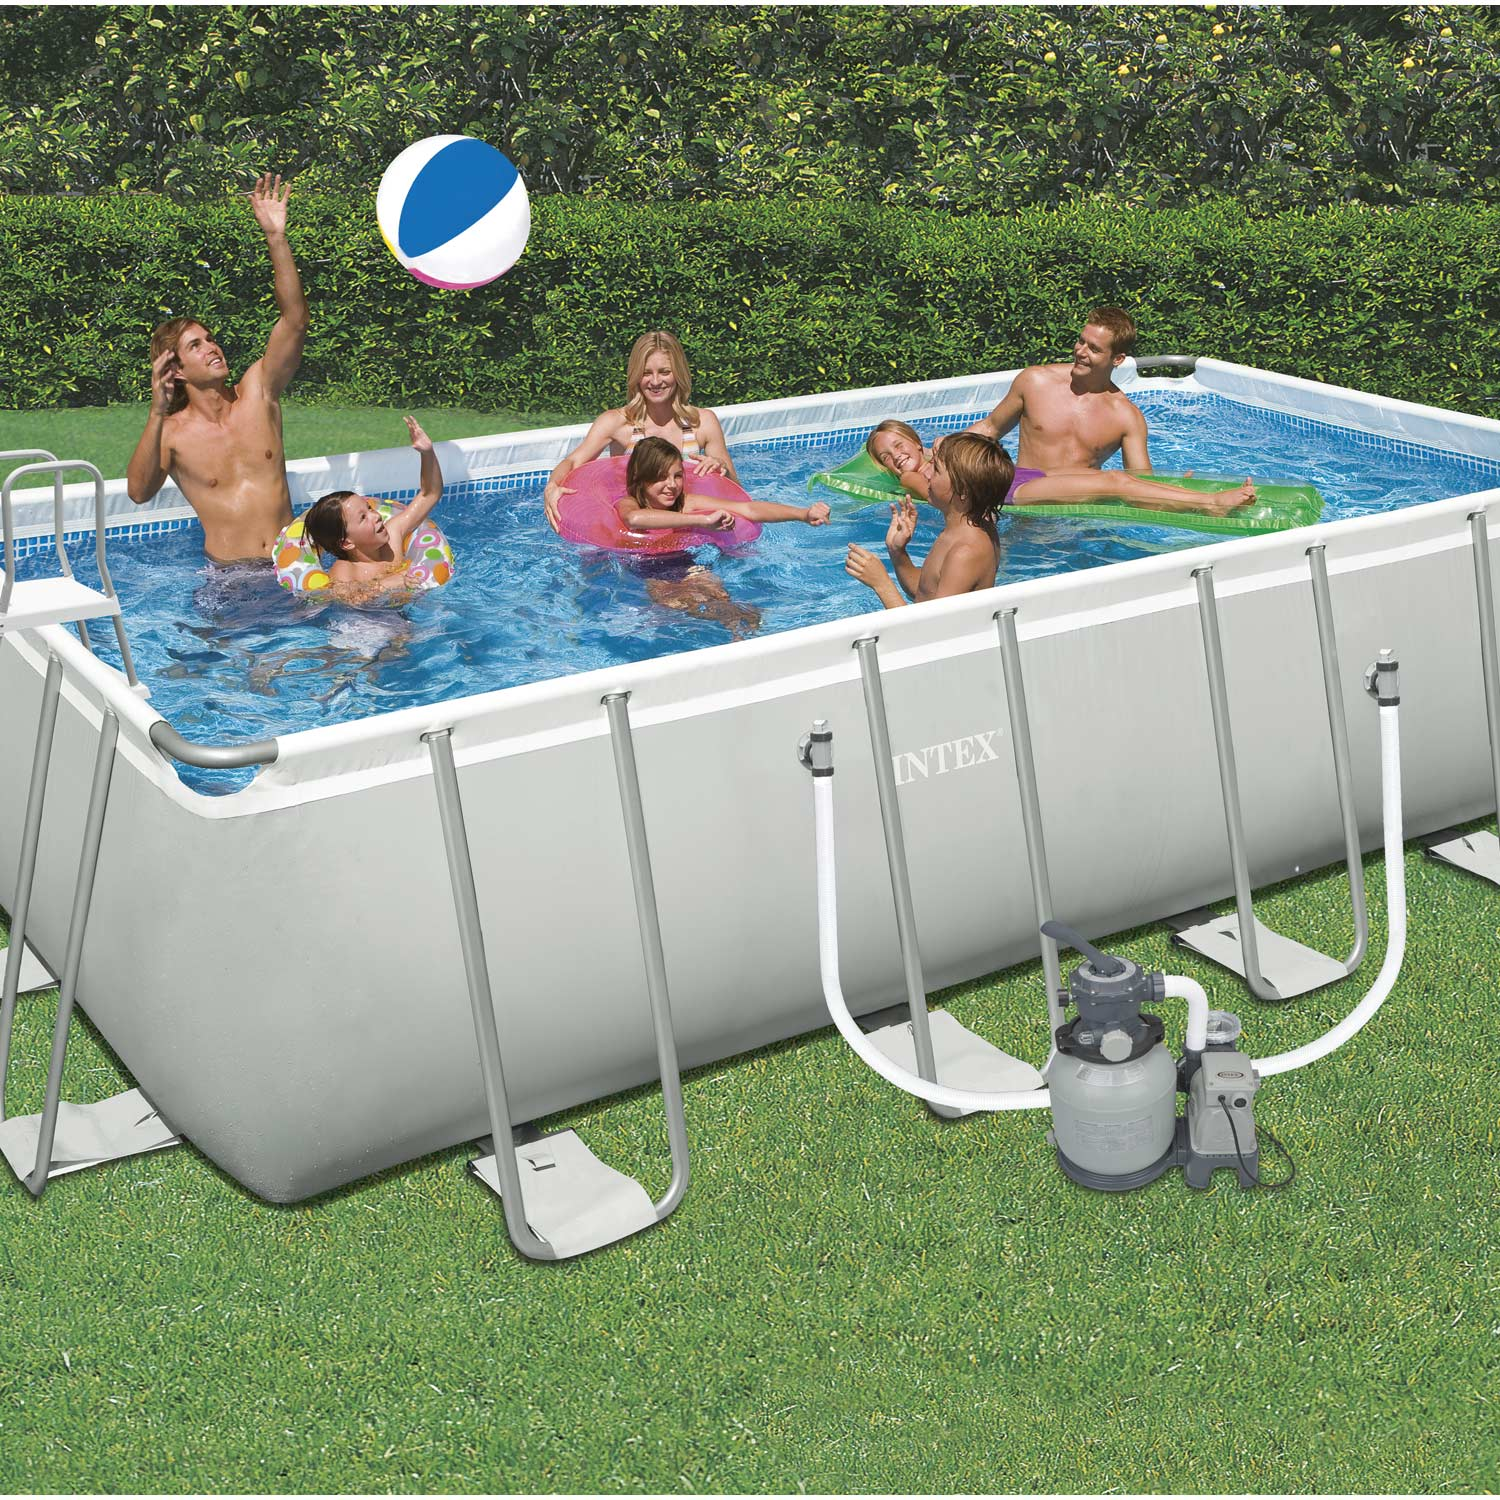 Piscine hors sol autoportante tubulaire intex l x l for Piscine tole hors sol